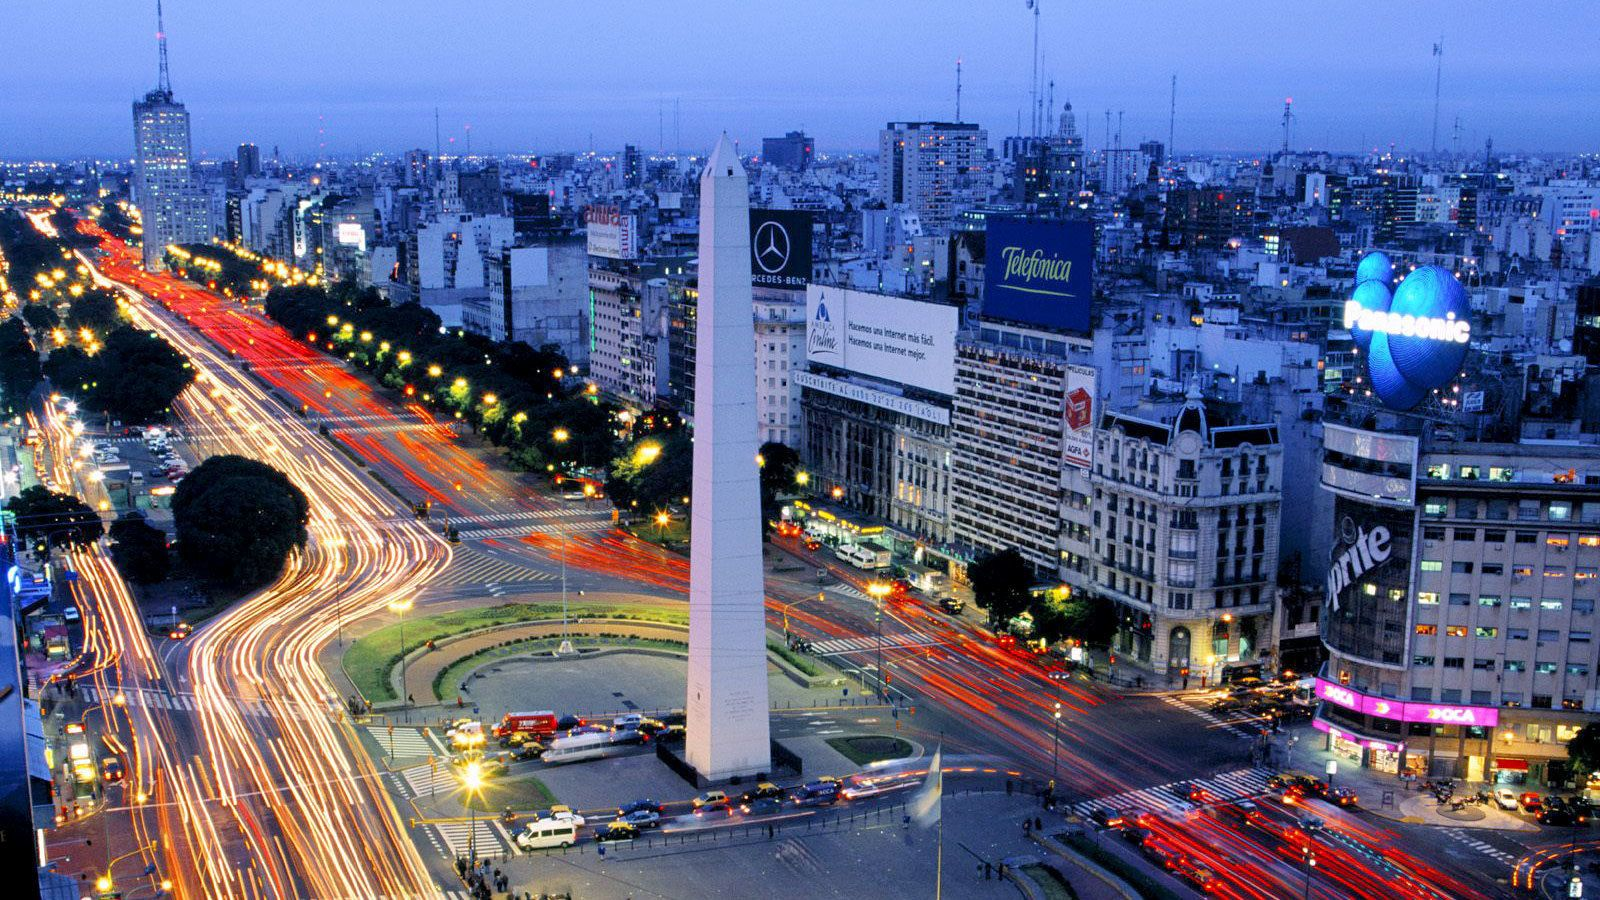 city lights around a standing monument in Argentina